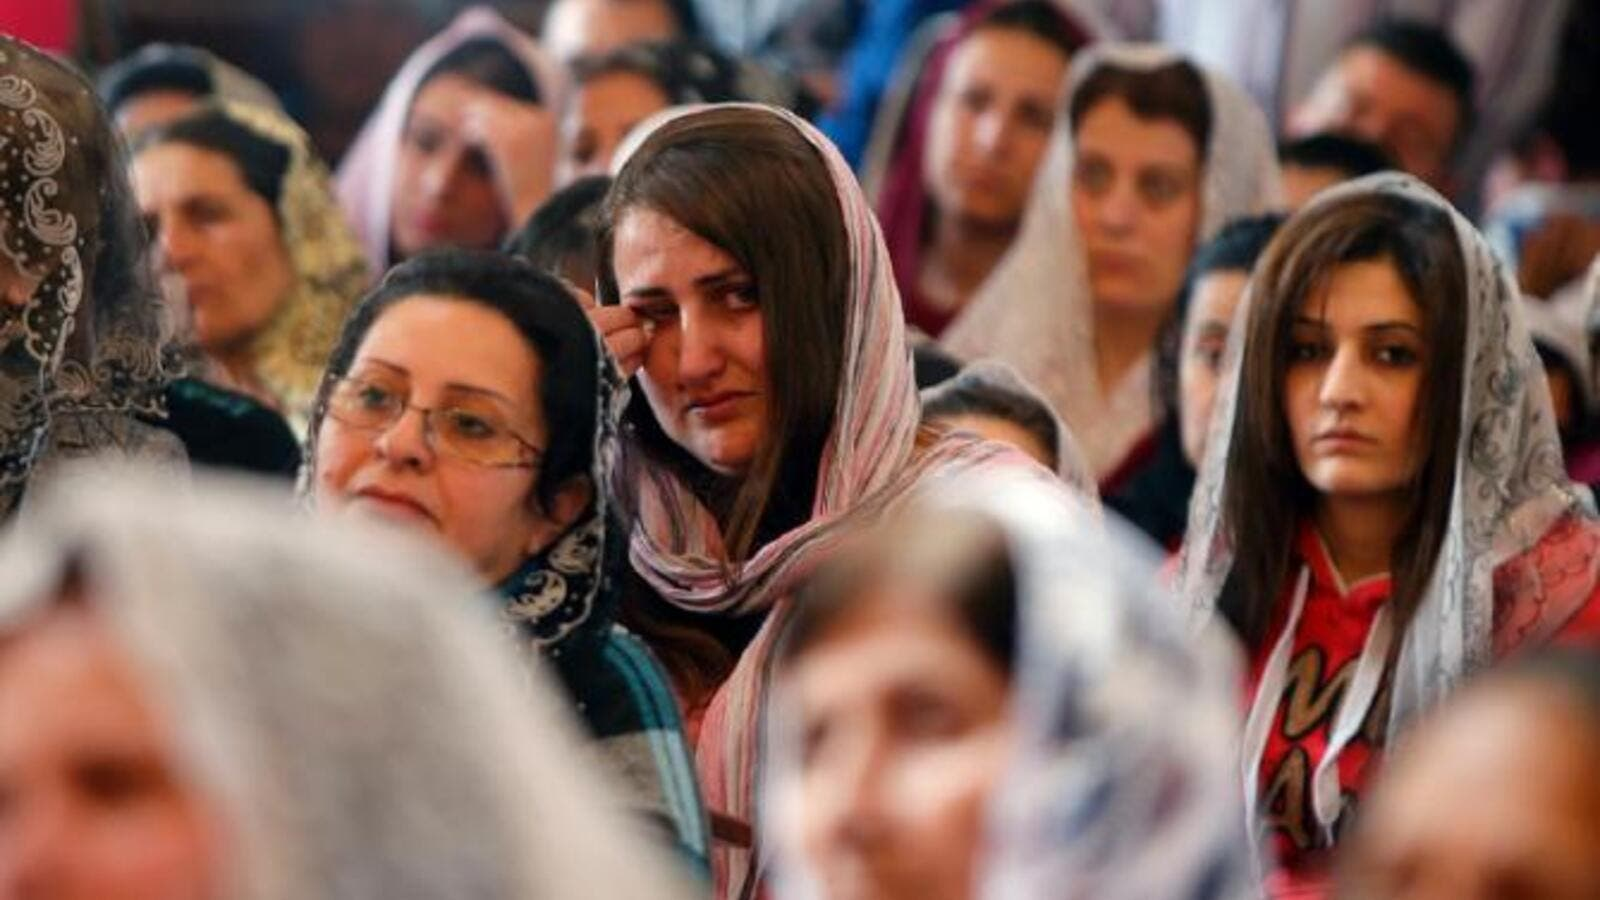 Around 140-150 Assyrians are believed to remain in captivity. (Al Bawaba/File)